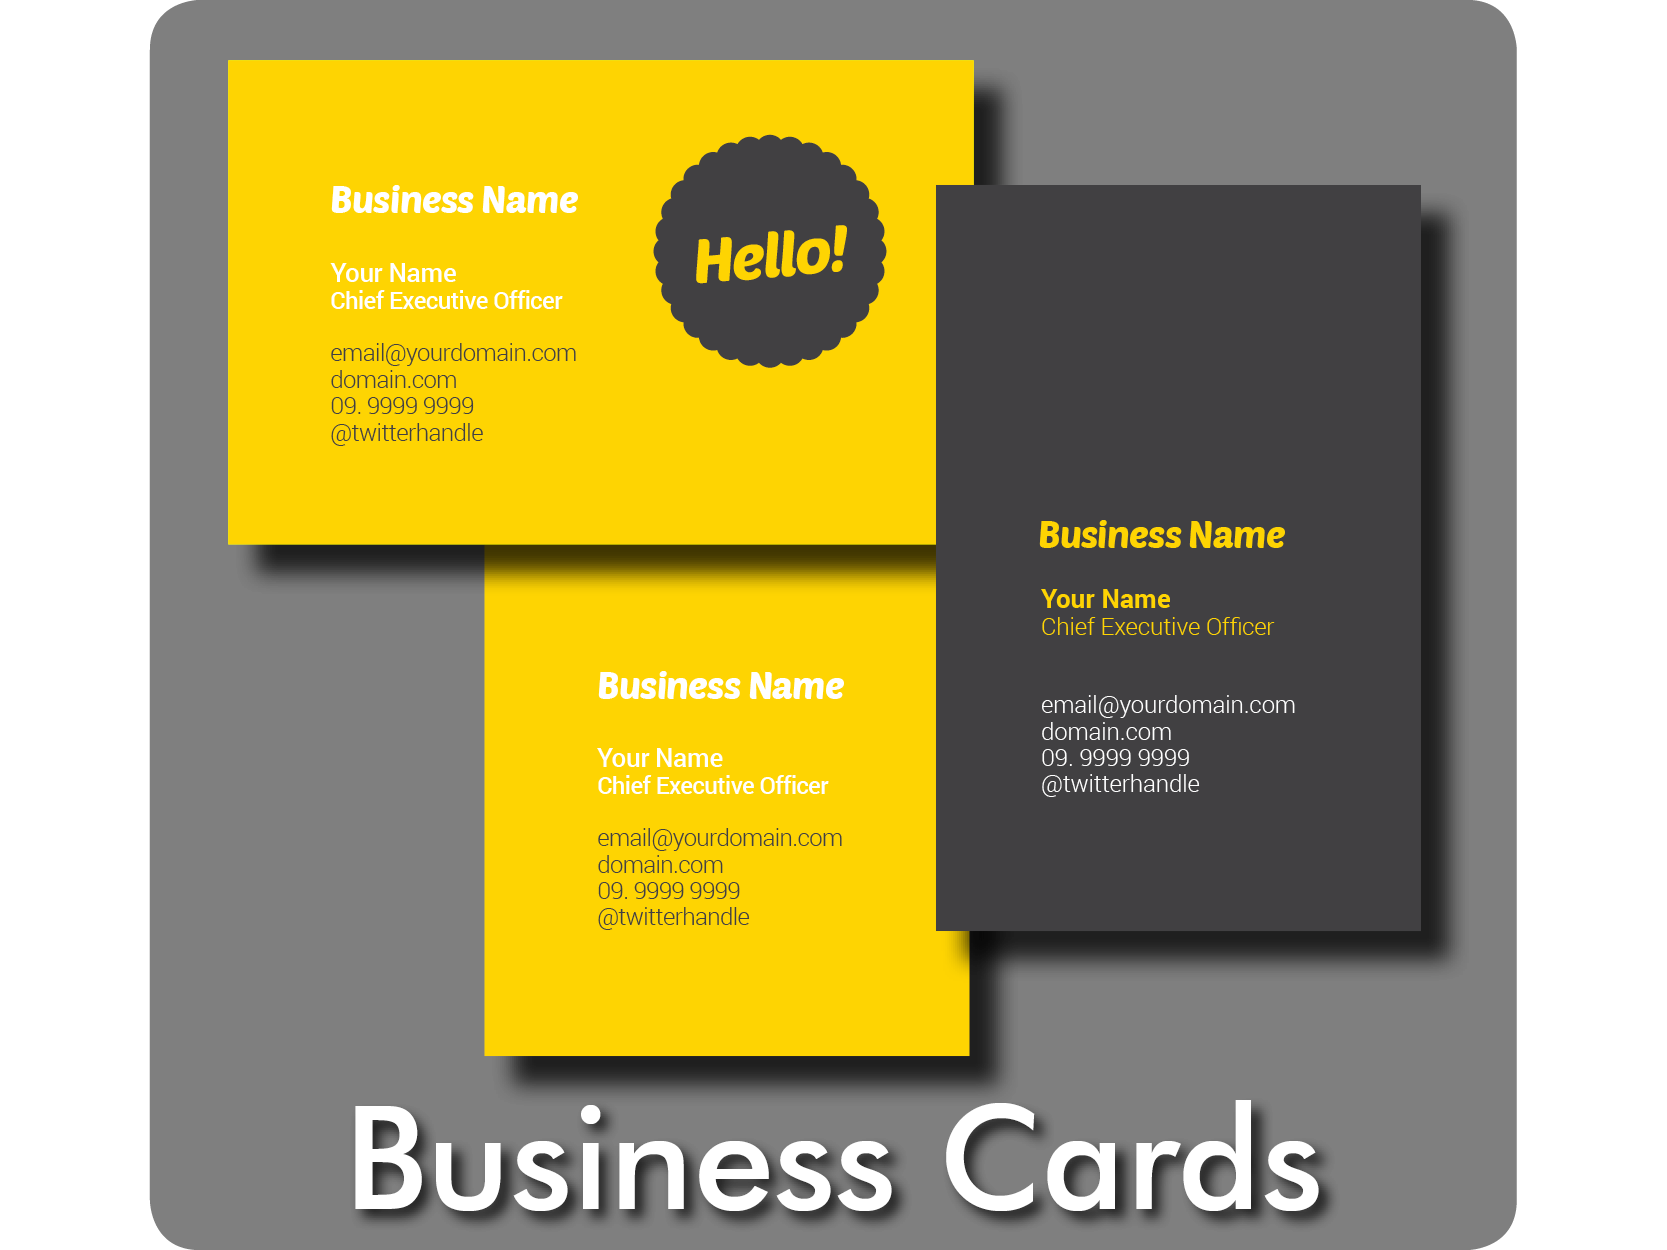 Business Cards, Dunedin Print, 297 Vogel Street, Dunedin3